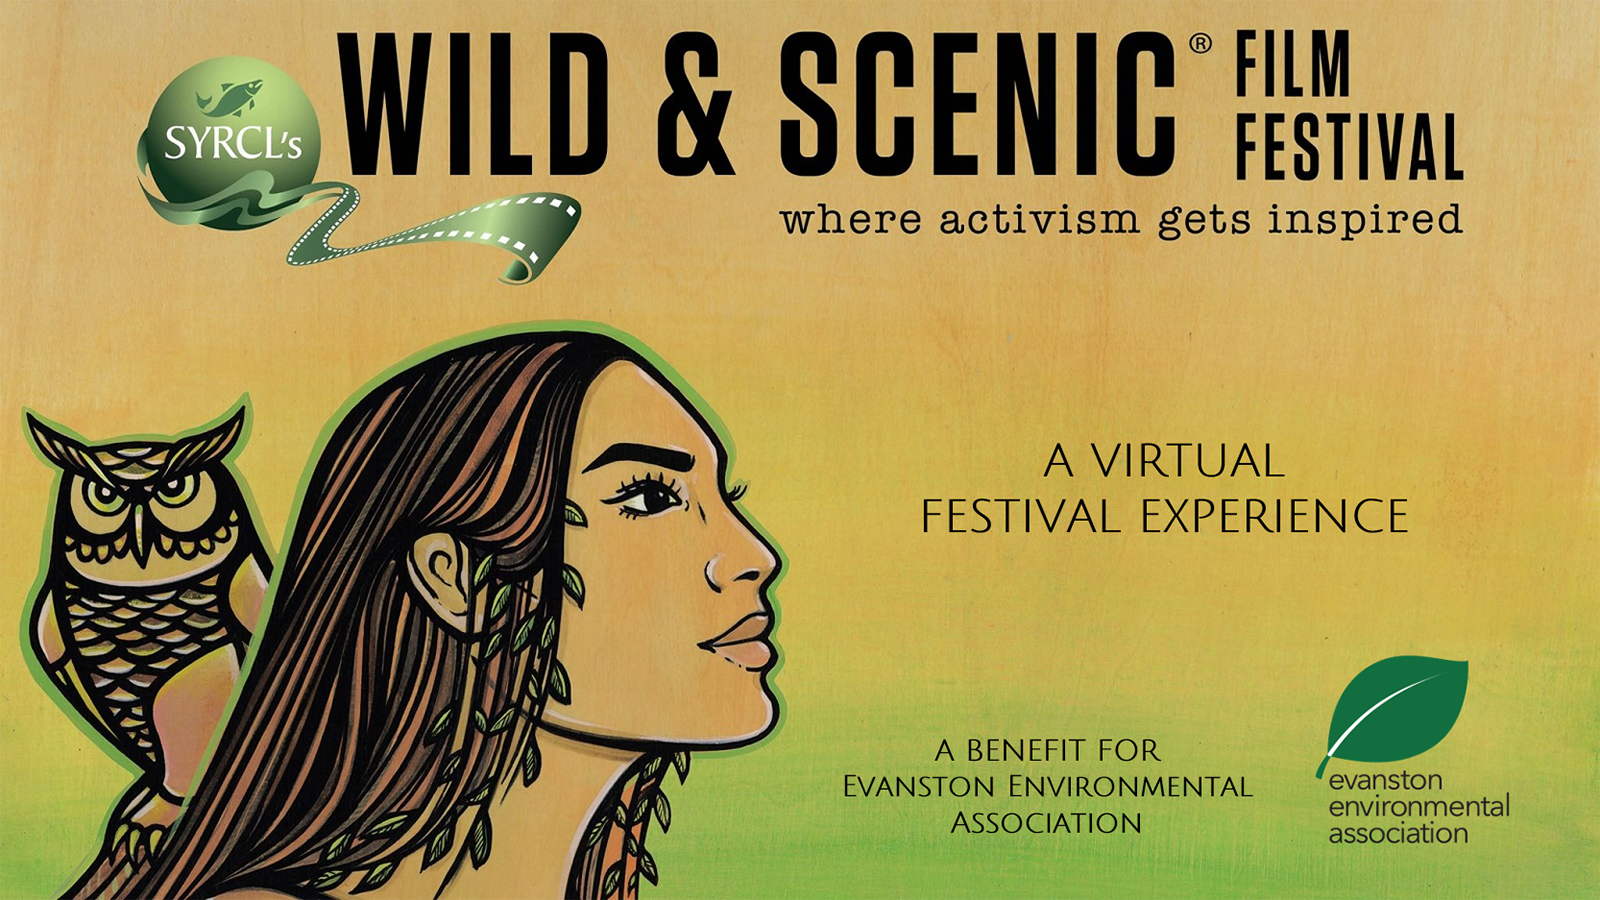 Evanston Environmental Association Presents SYRCL's Wild & Scenic Film Festival On Tour (Week 2)